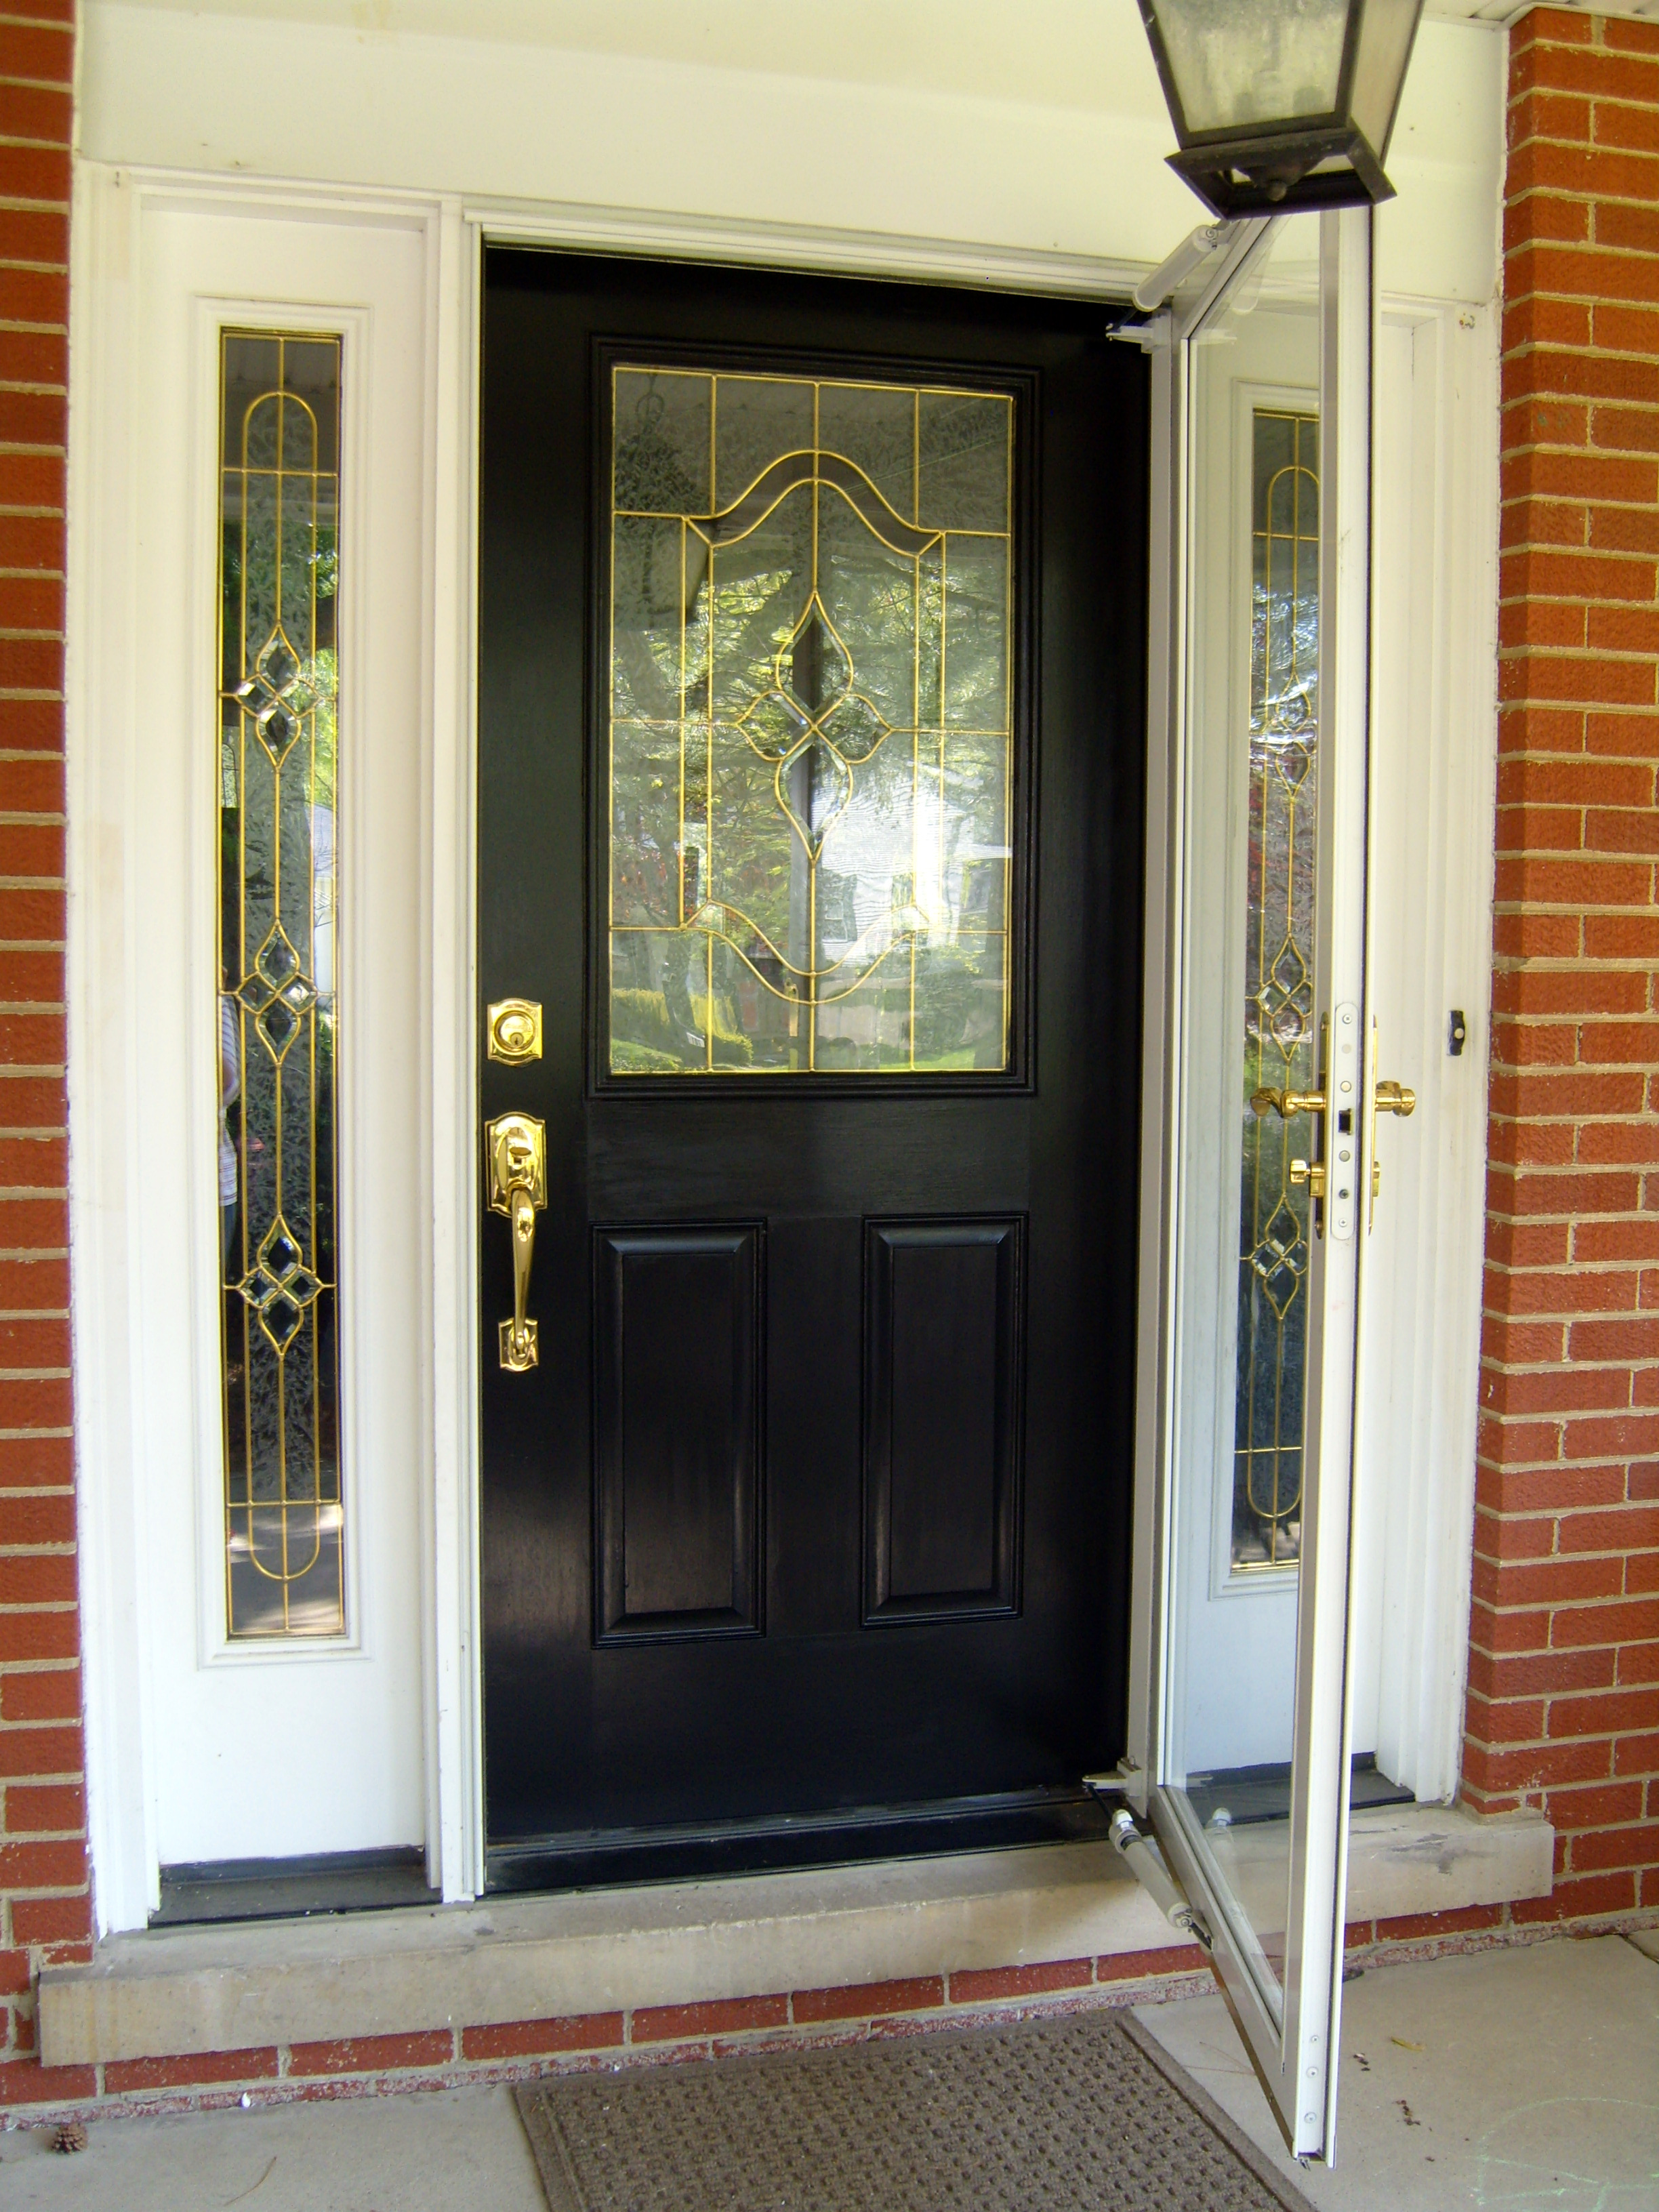 Painting the front door home baked Dark green front door paint